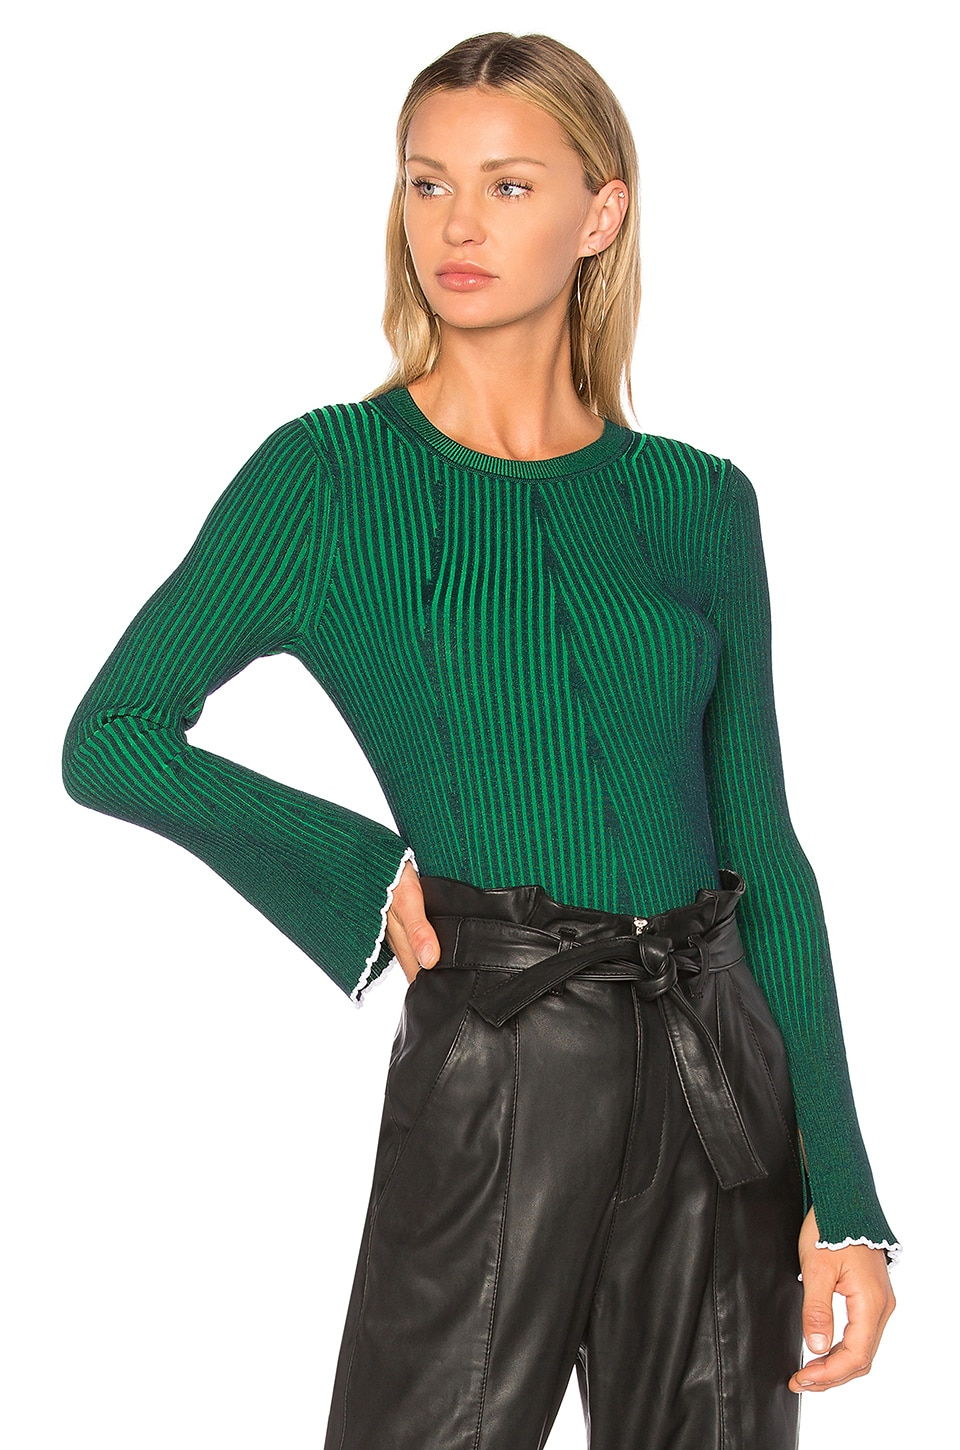 T by Alexander Wang Flared Sleeve Sweater in Navy & Emerald Combo